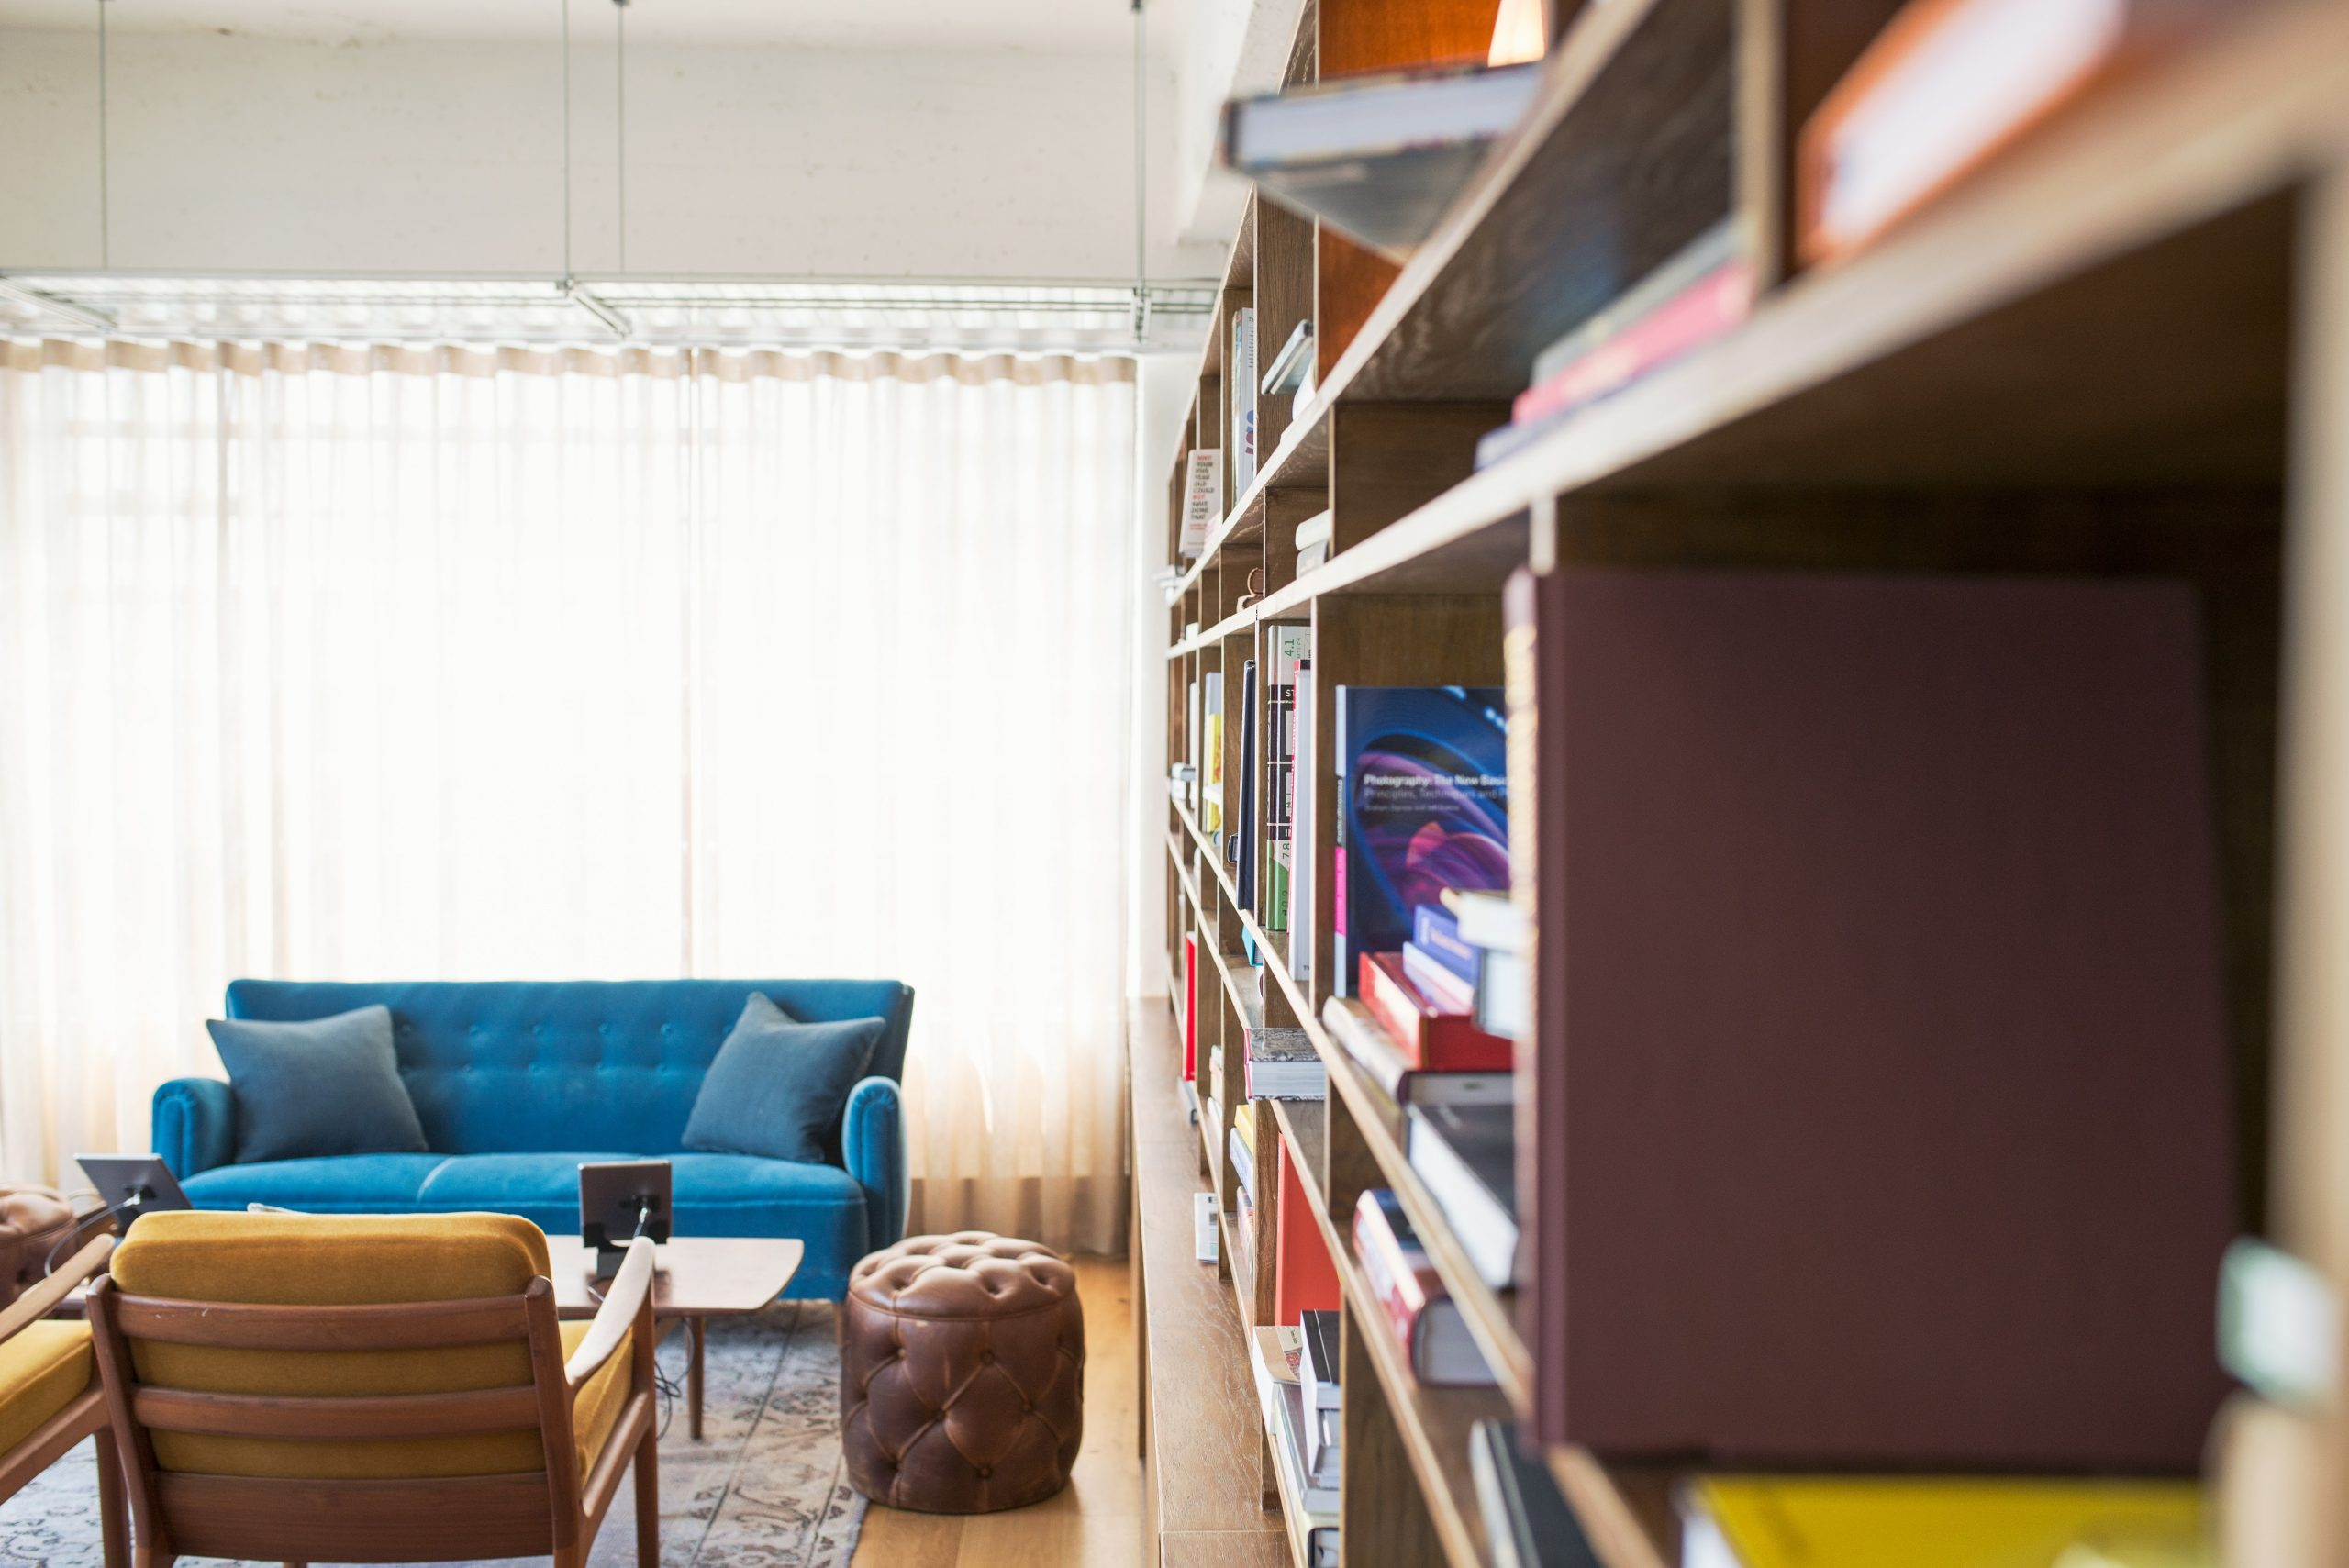 Have you heard of the book nook trend? A book nook is a cute little insert that tucks between the books on your bookshelf. It's basically a whole new (miniature!) world on your bookshelf. Pretty cool, right? Look here to see how to create a cozy book nook.